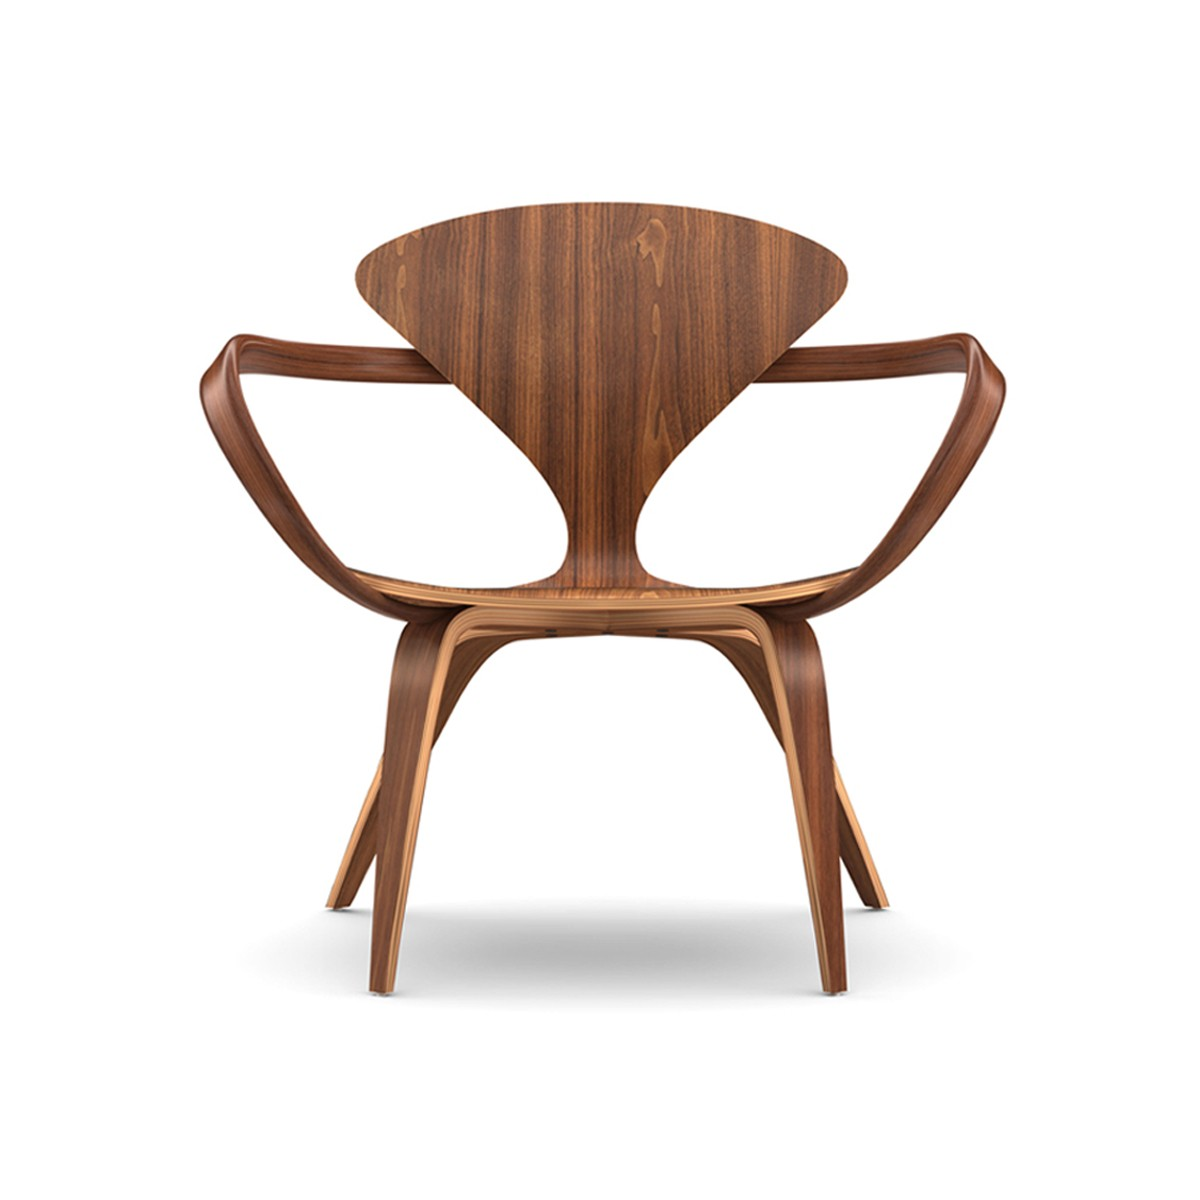 Classic midcentury lounge chair with elegant wood grain